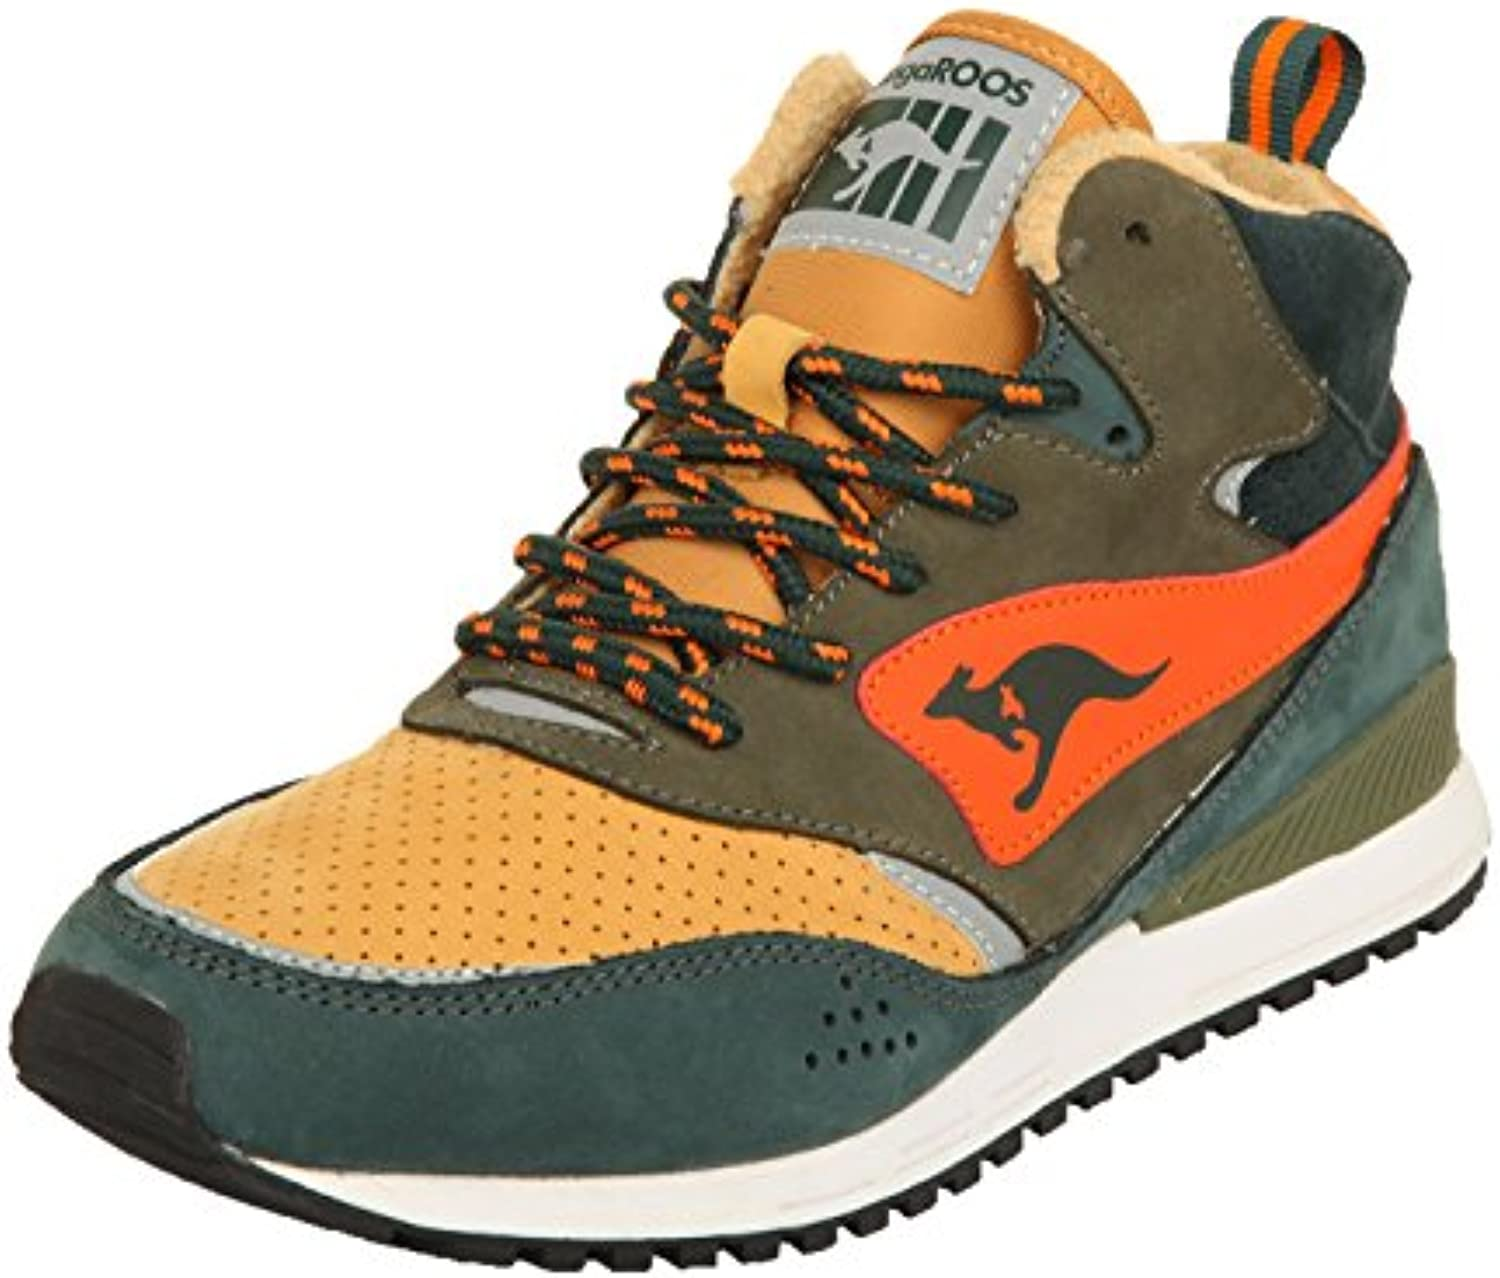 KangaROOS Herren Sneakers Frenzy Roos 003 DK Pineneedle/Orange 471560 872